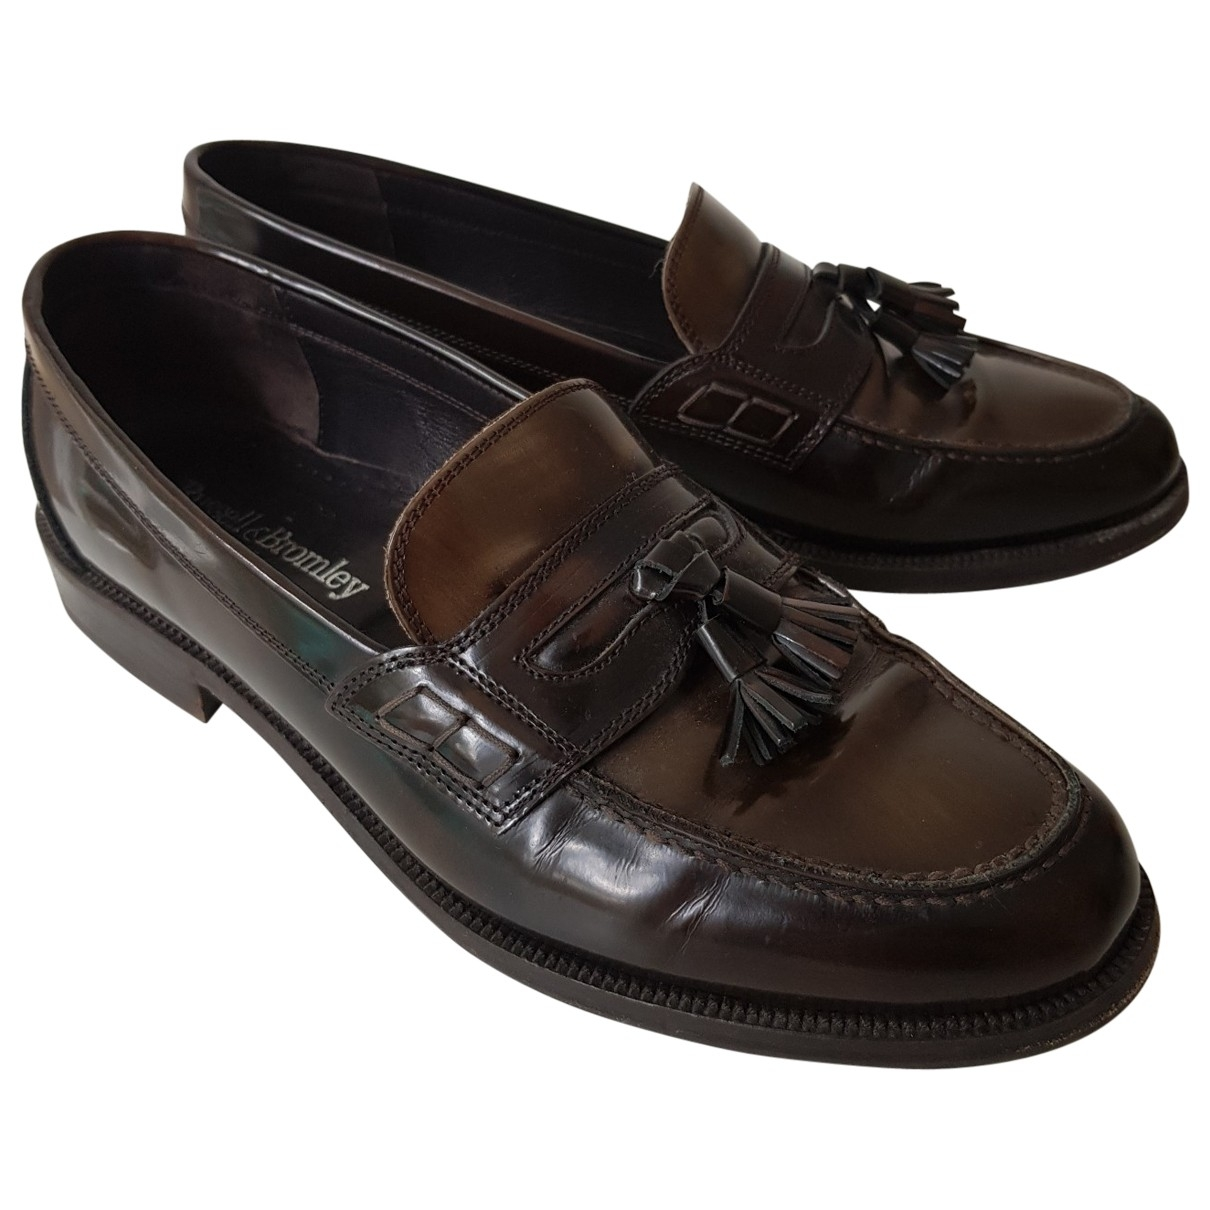 Russell & Bromley \N Brown Patent leather Flats for Men 44.5 EU